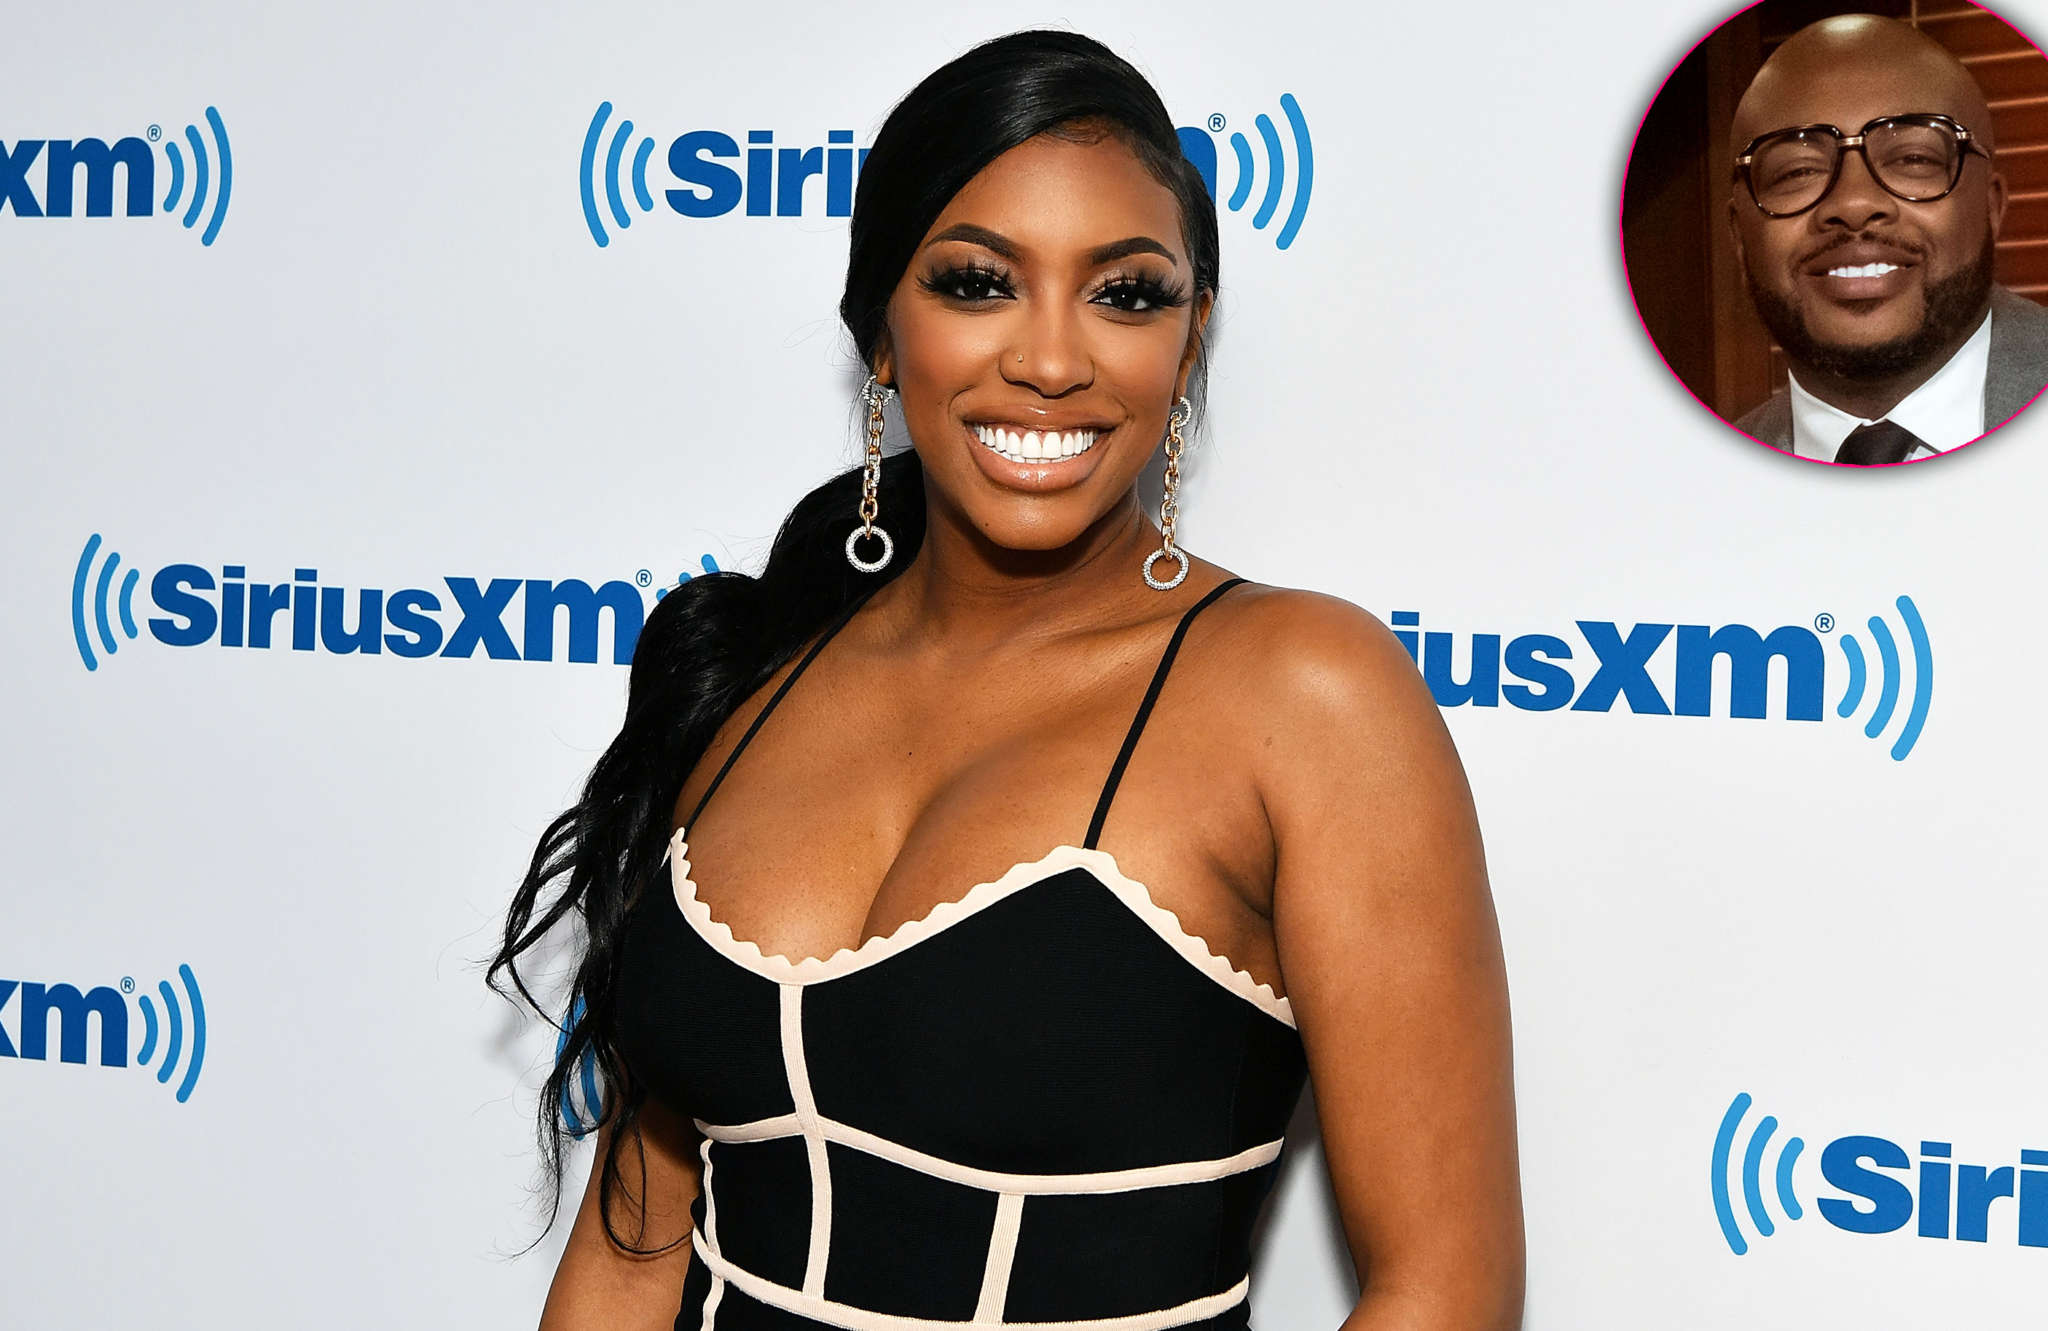 Porsha Williams Hints At The Fact That She's Back Together With Dennis McKinley